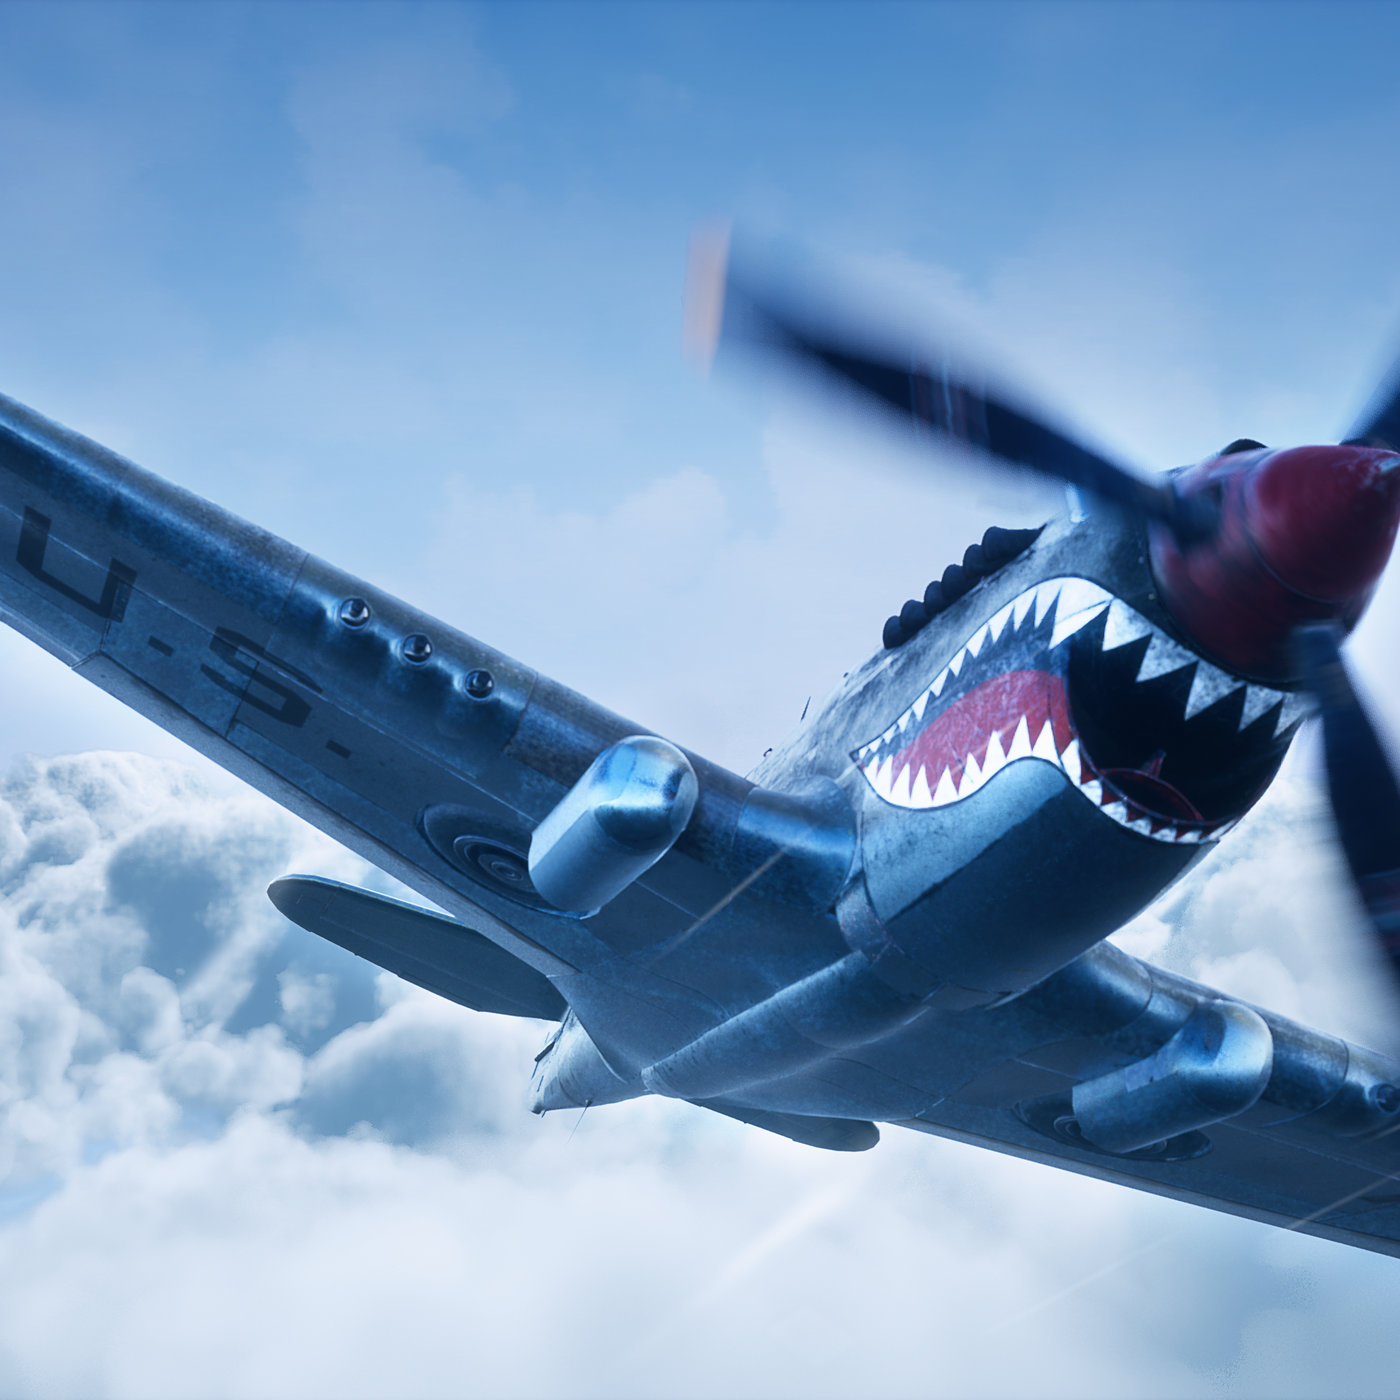 Curtiss P-40 Warhawks - Realtime